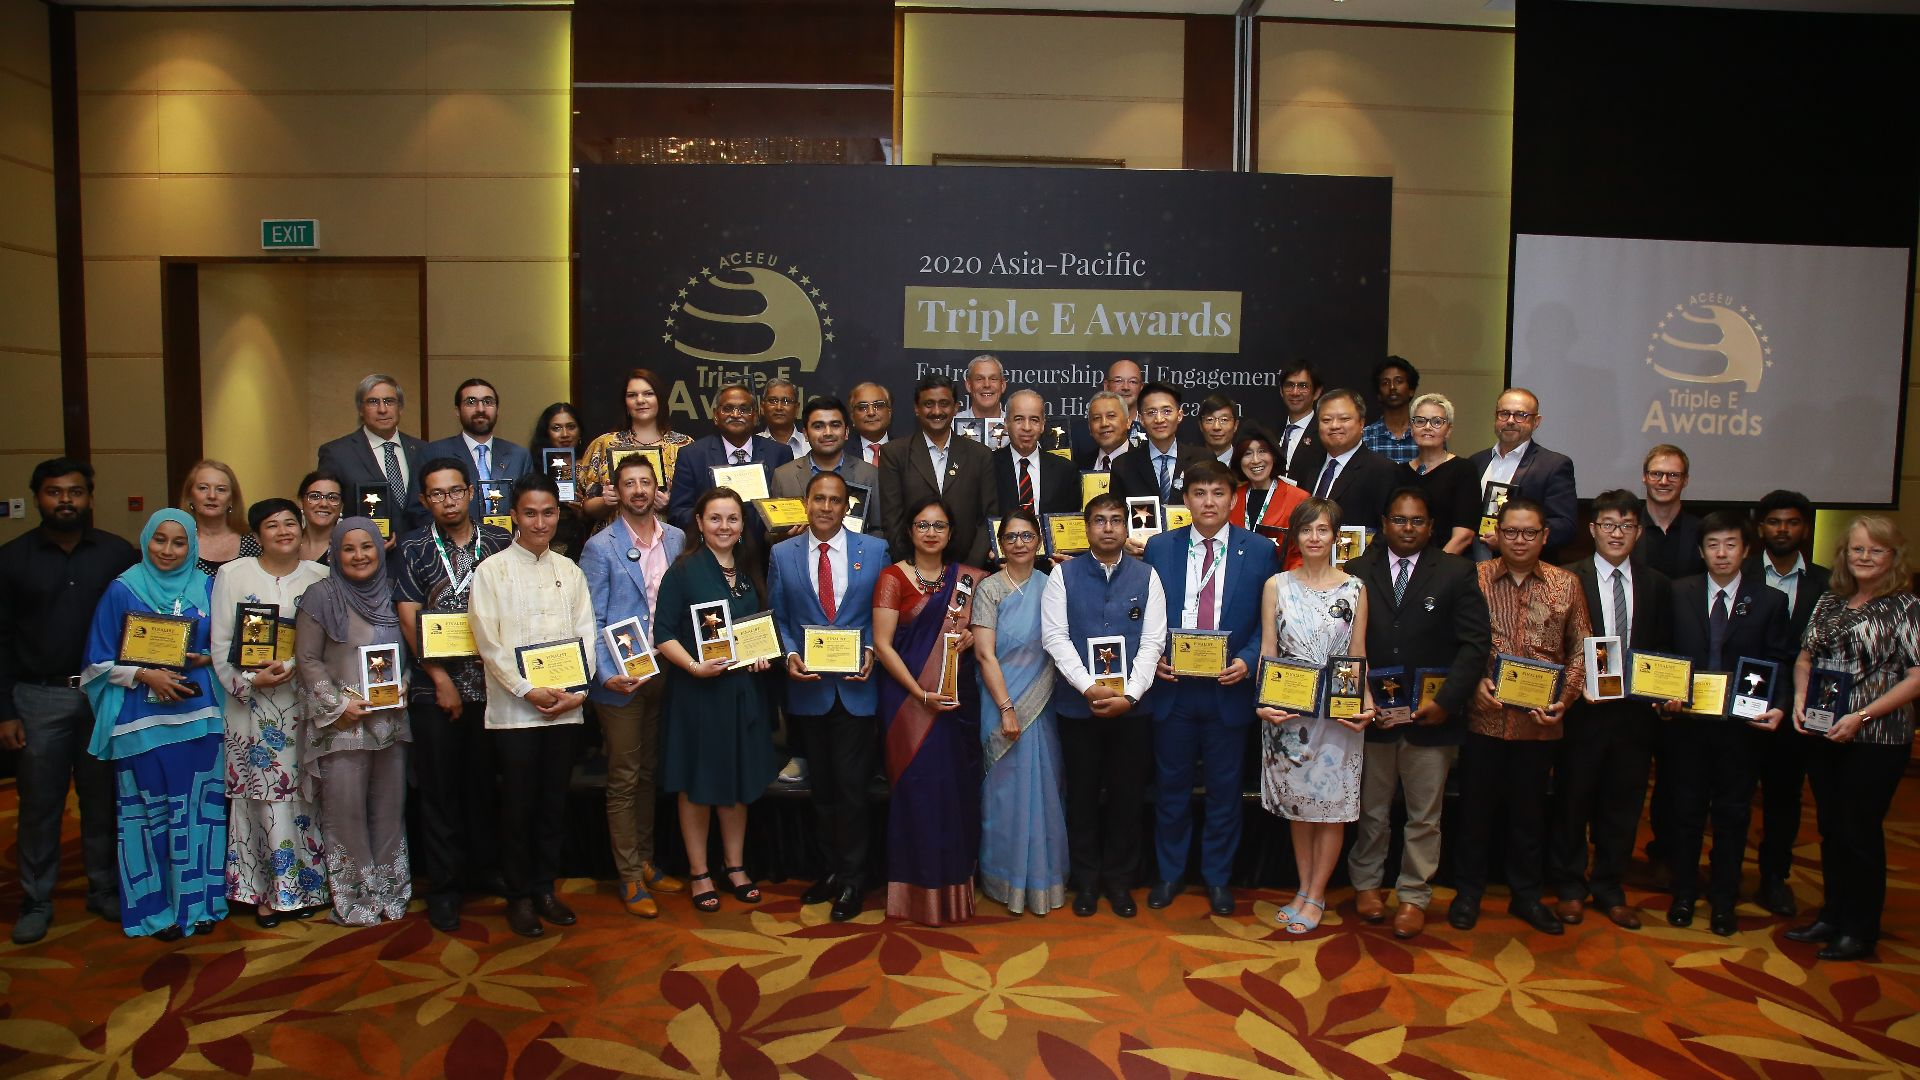 Cyber security project gains international recognition at Asia-Pacific awards